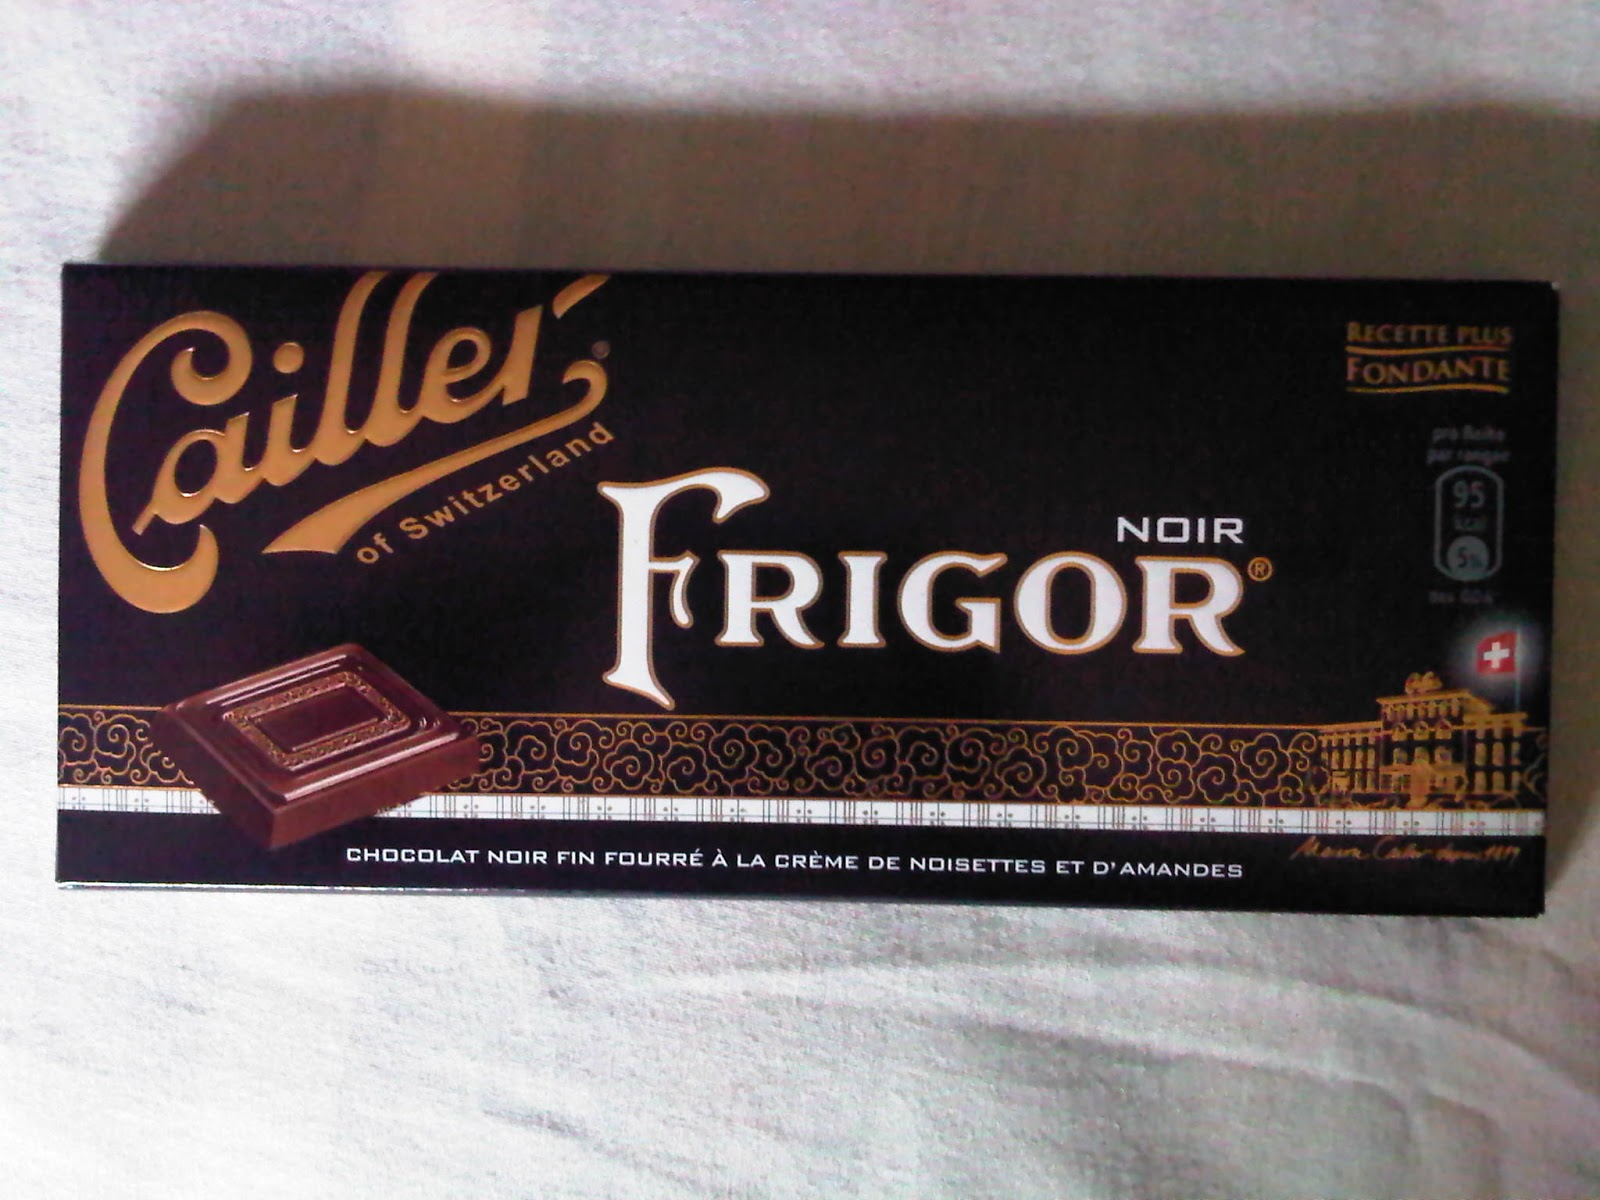 Regin's Realm: Chocolate review: Cailler Frigor Noir